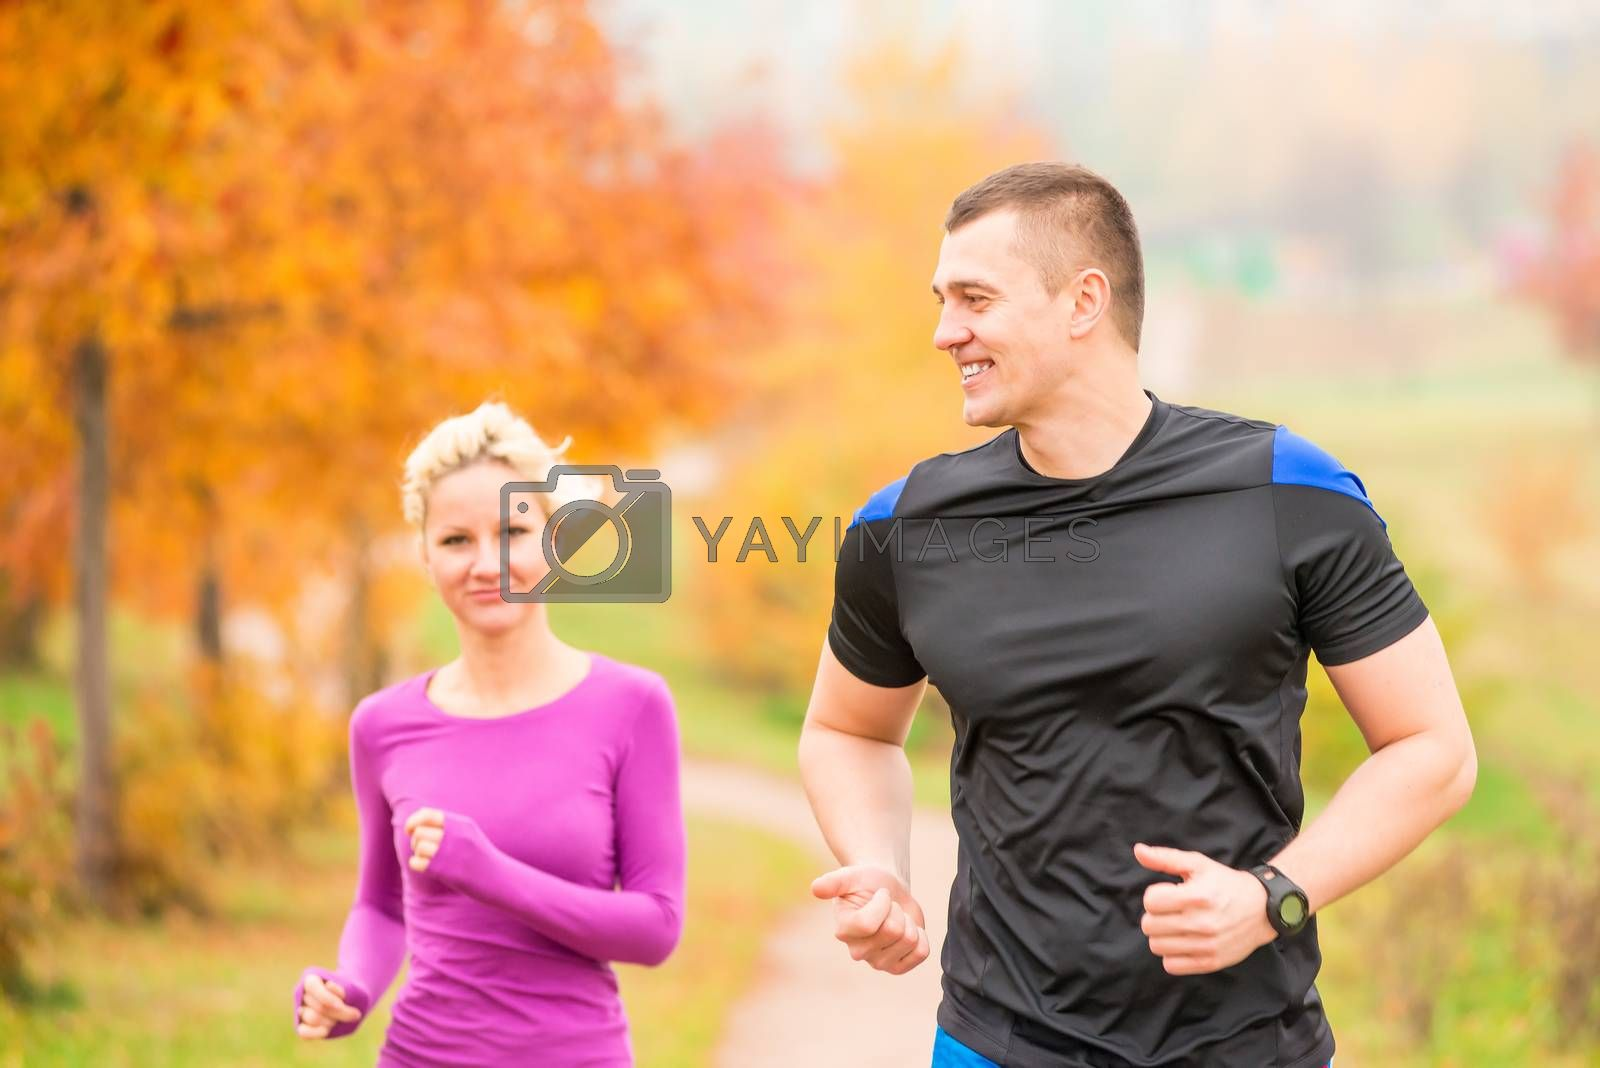 healthy lifestyle - jogging. a man and a woman running in the morning in the park